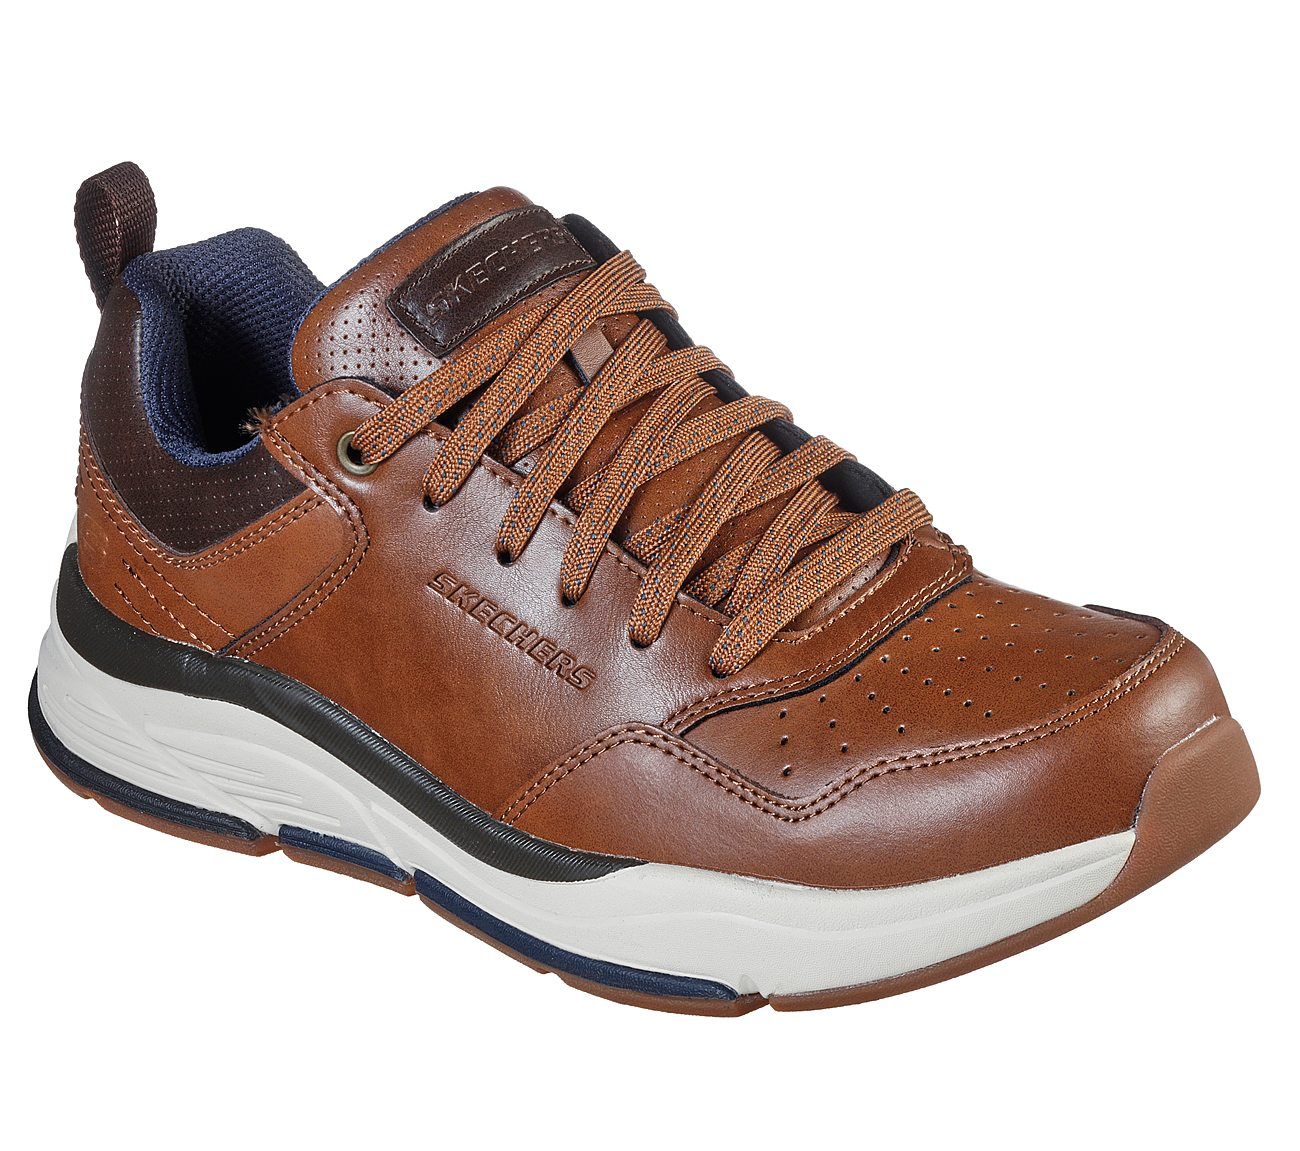 Buy SKECHERS Relaxed Fit: Benago Treno Relaxed Fit Shoes yhH8E